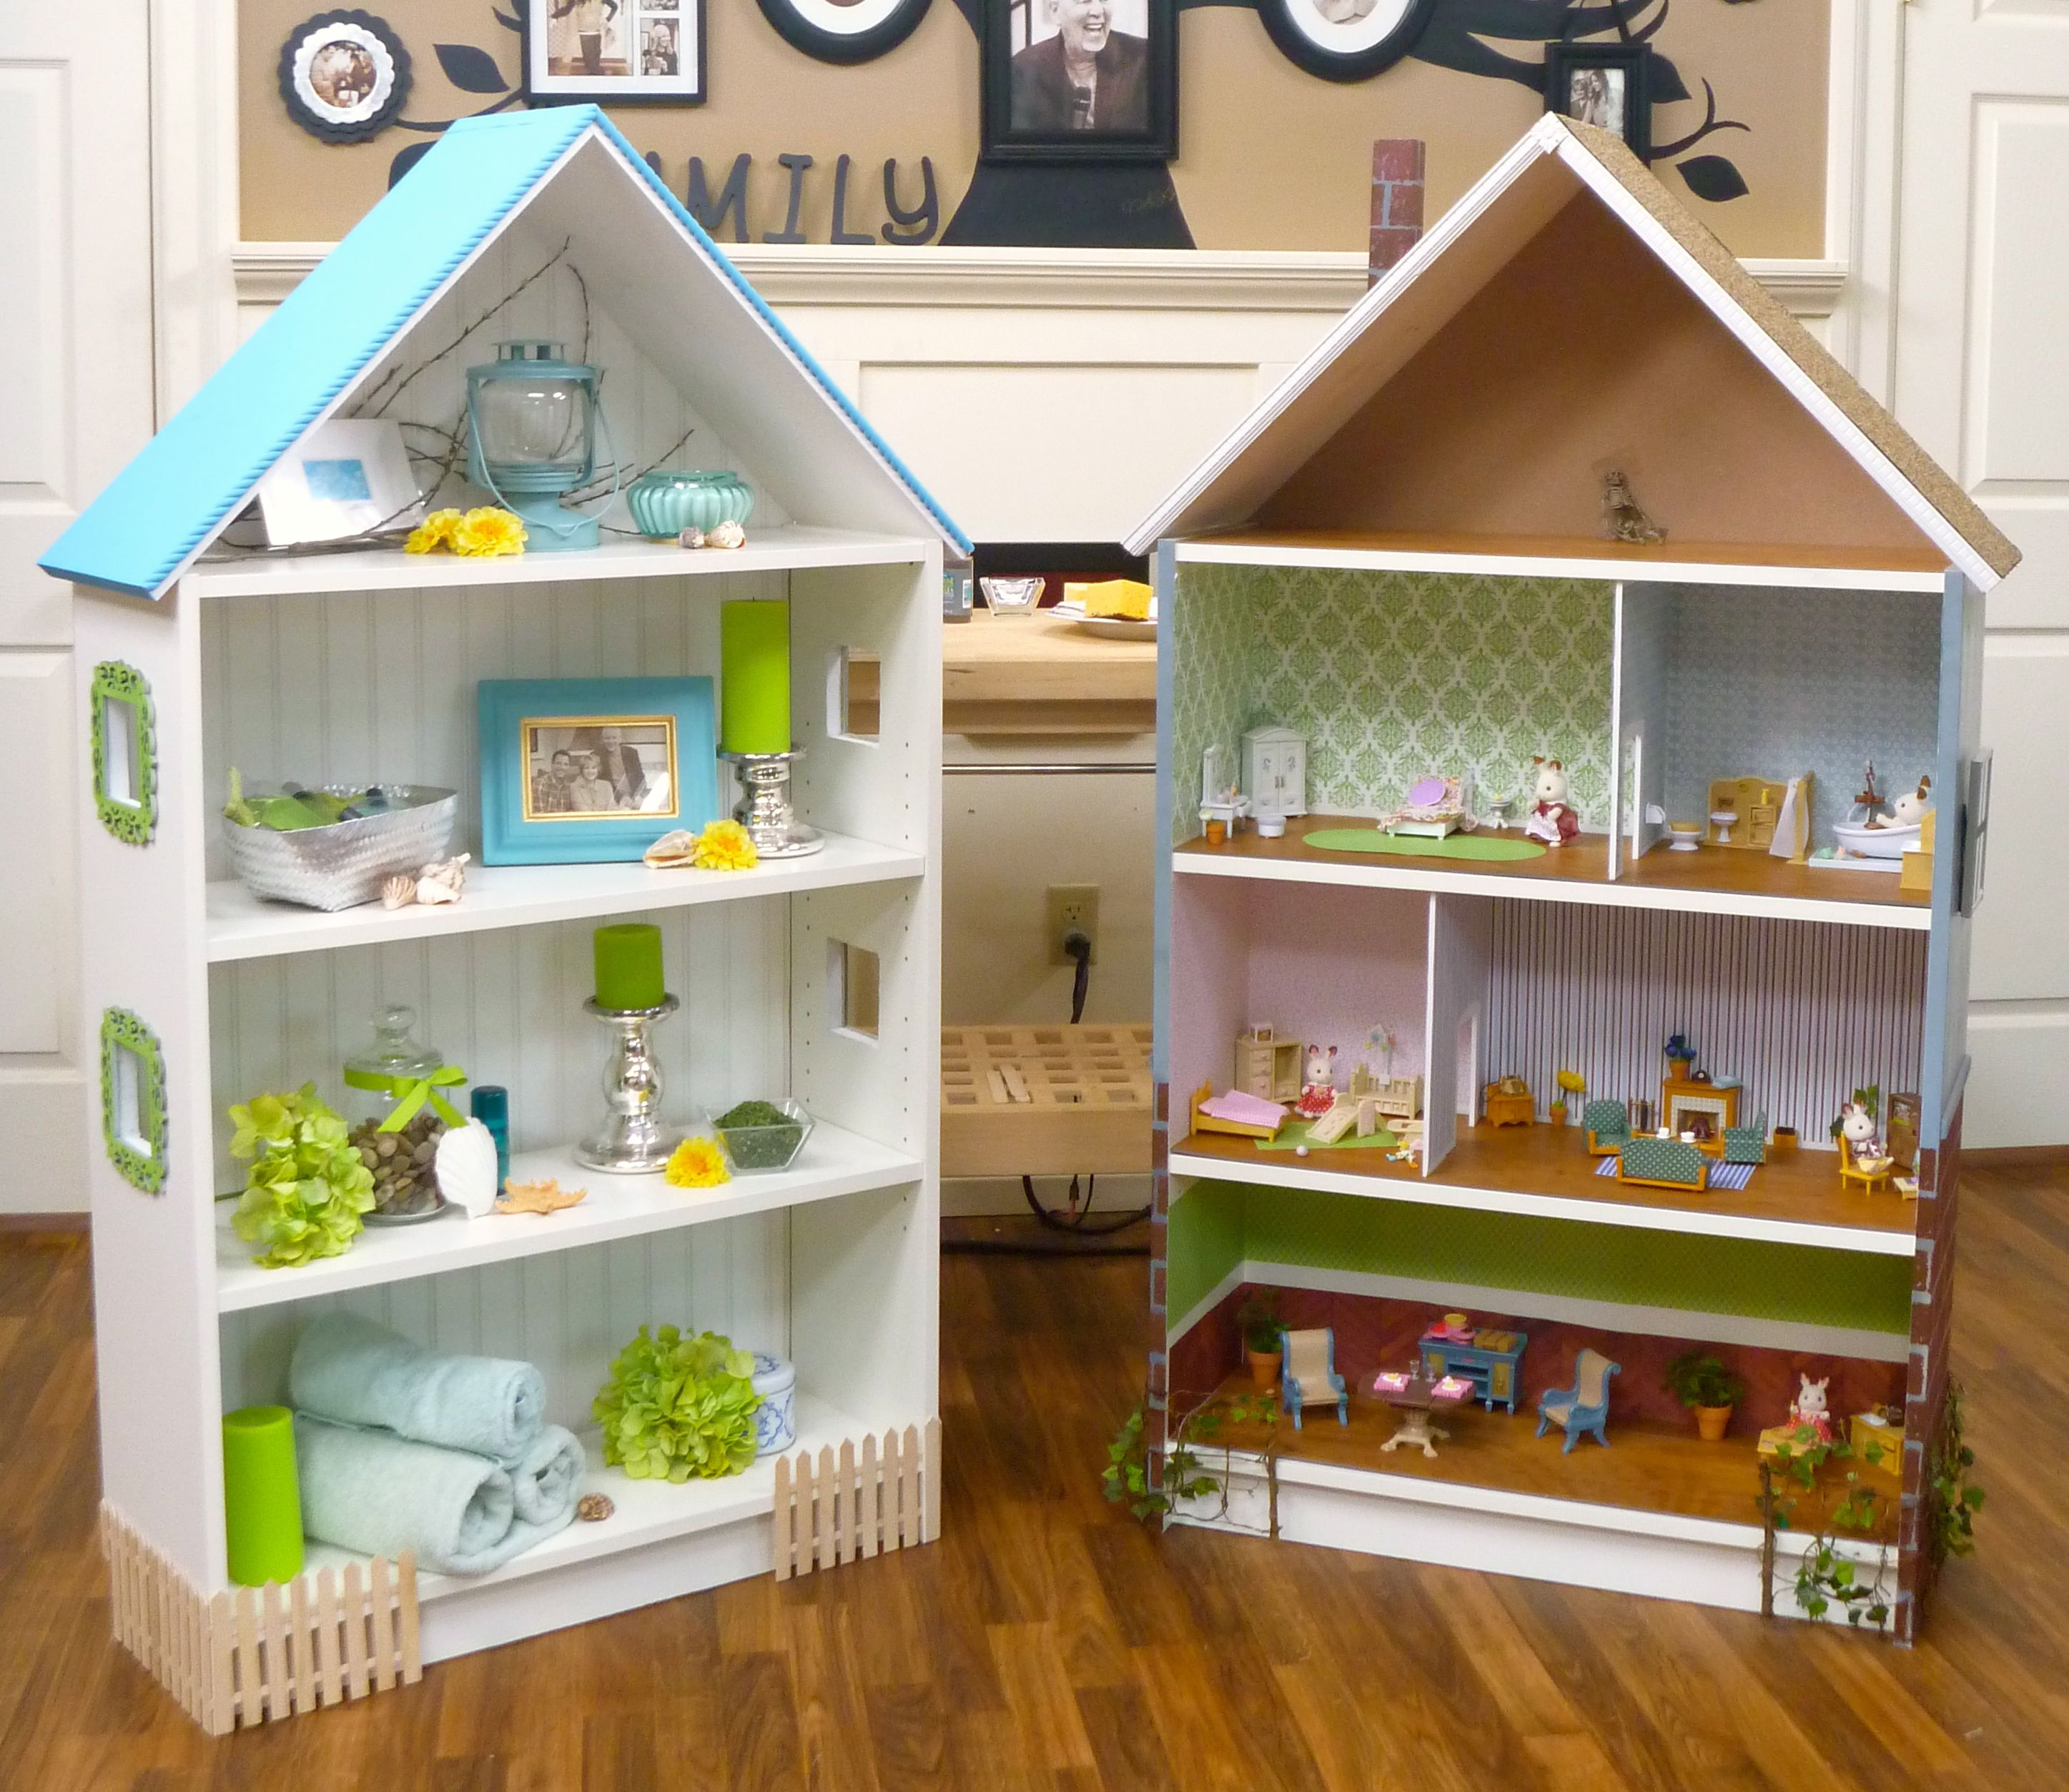 Dollhouse Bookcase: Beach Cottage, Brick Row House — Cute Ikea Hack ...